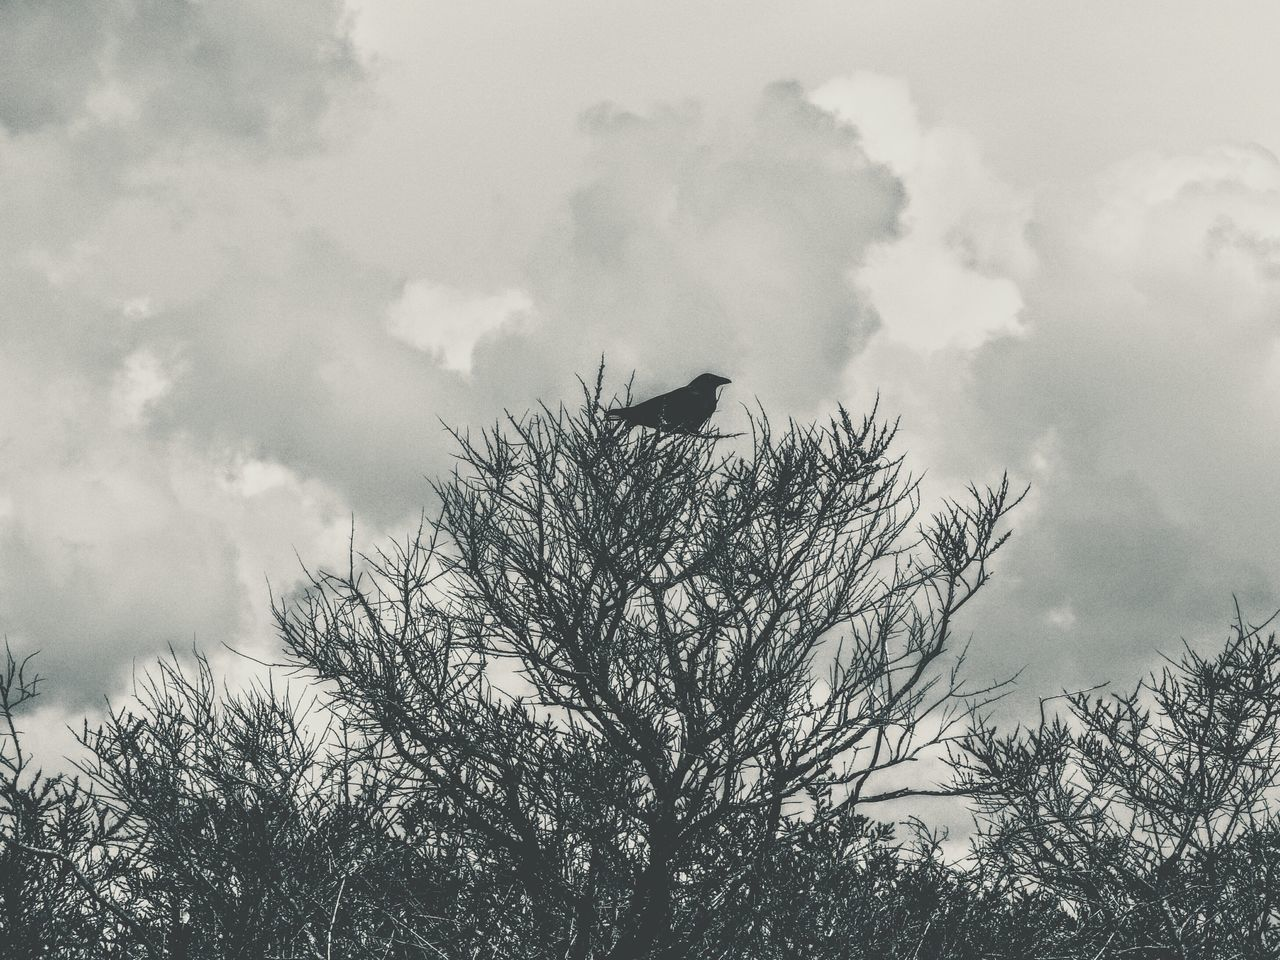 bird, animal themes, one animal, animals in the wild, sky, low angle view, cloud - sky, animal wildlife, day, flying, outdoors, no people, nature, tree, spread wings, crow, raven - bird, bird of prey